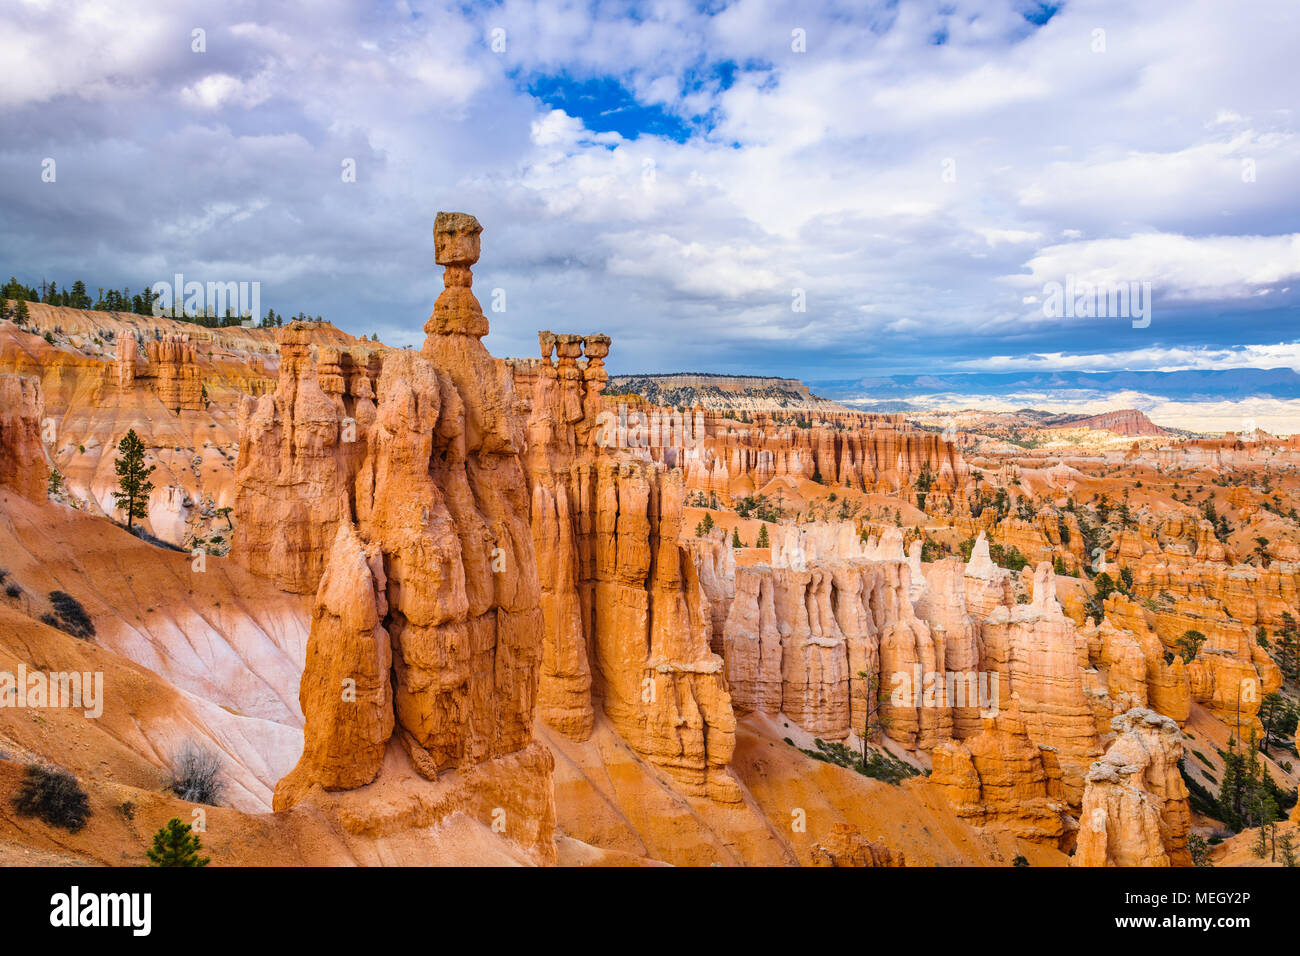 Bryce Canyon National Park, Utah, USA au Thor's Hammer. Banque D'Images